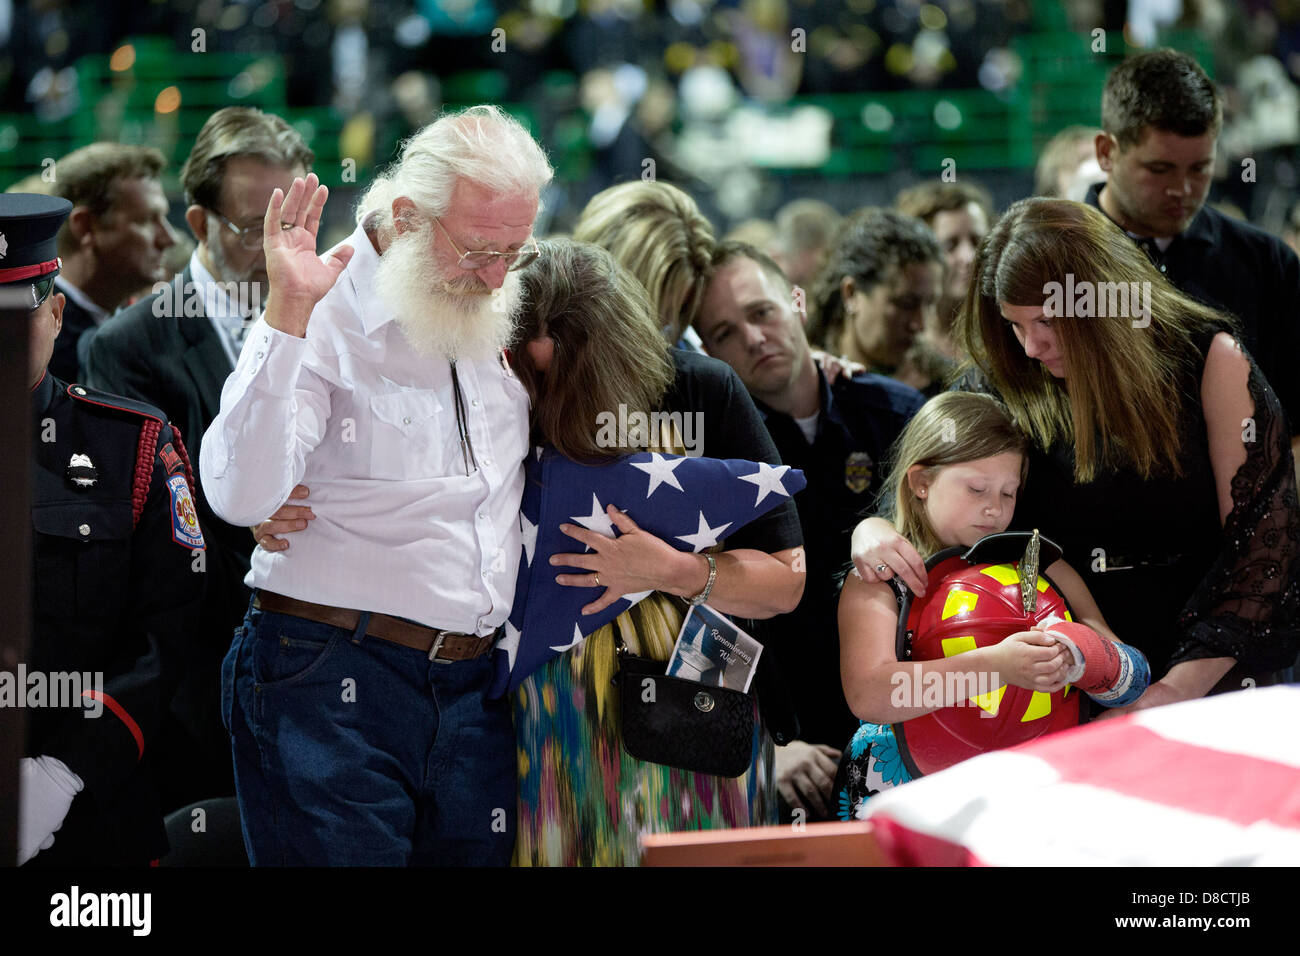 Family members pray during a memorial service for victims of a fertilizer plant explosion in West, Texas, at Baylor - Stock Image